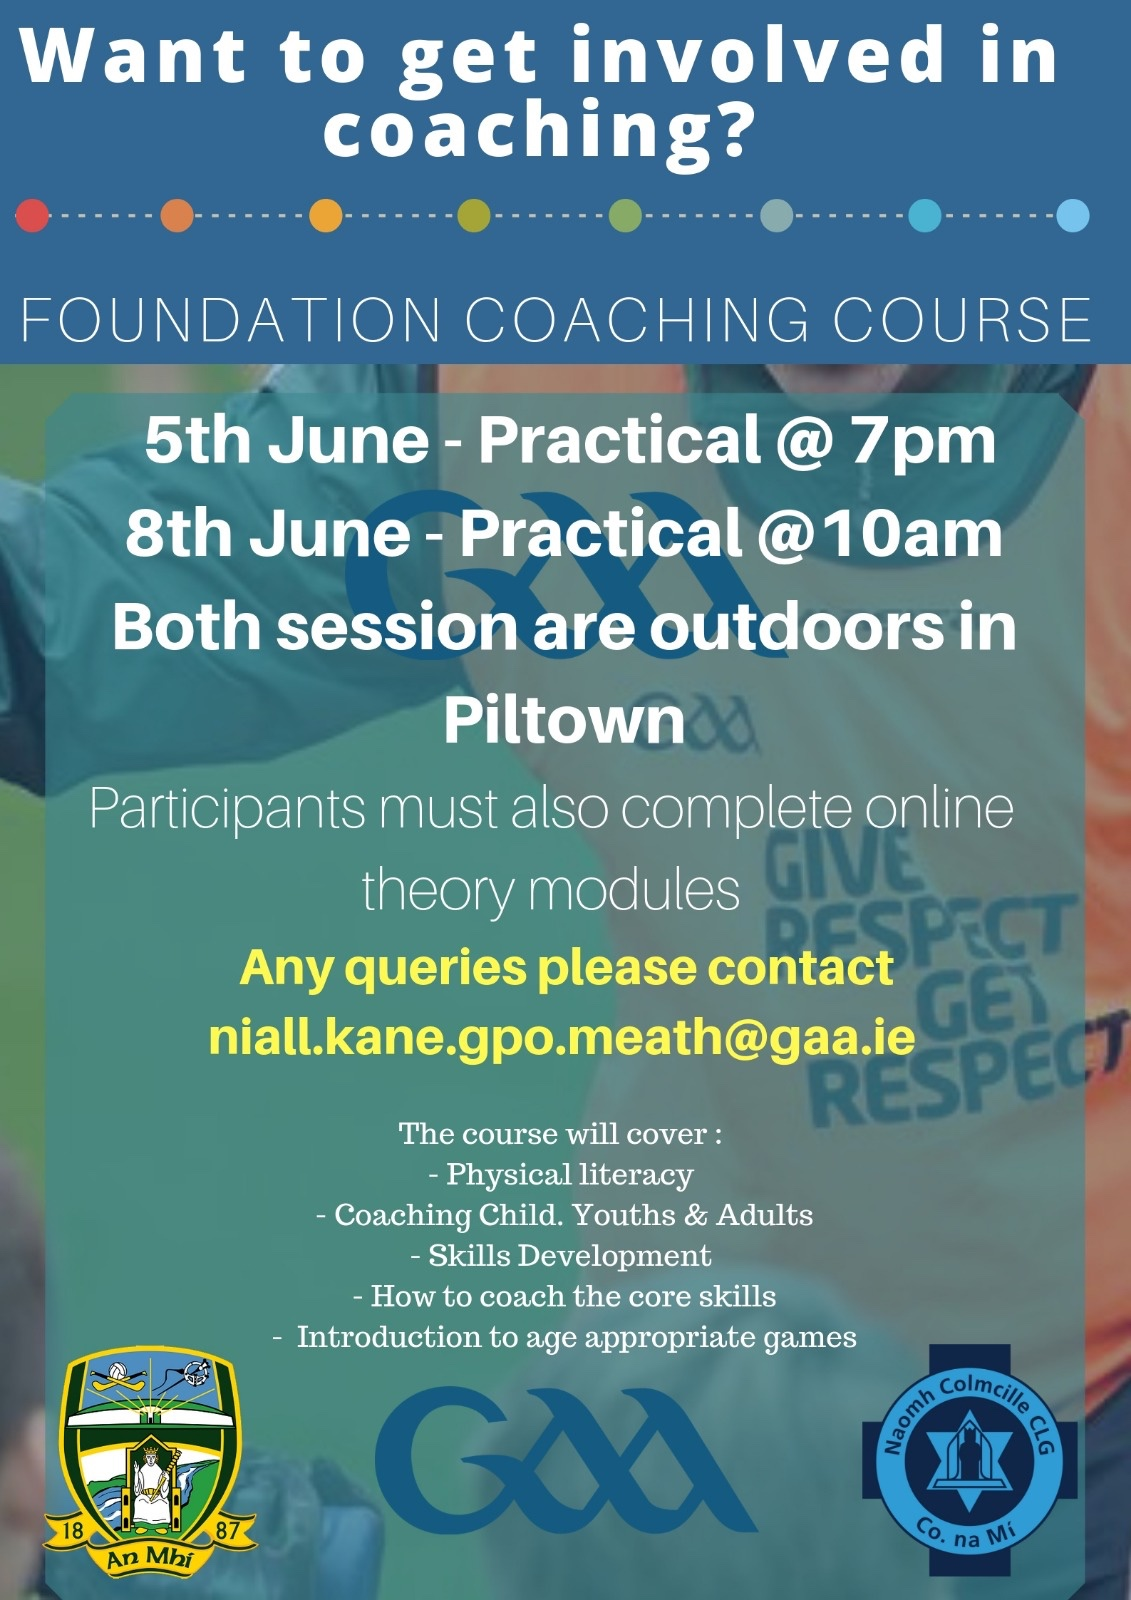 Foundation Coaching Course